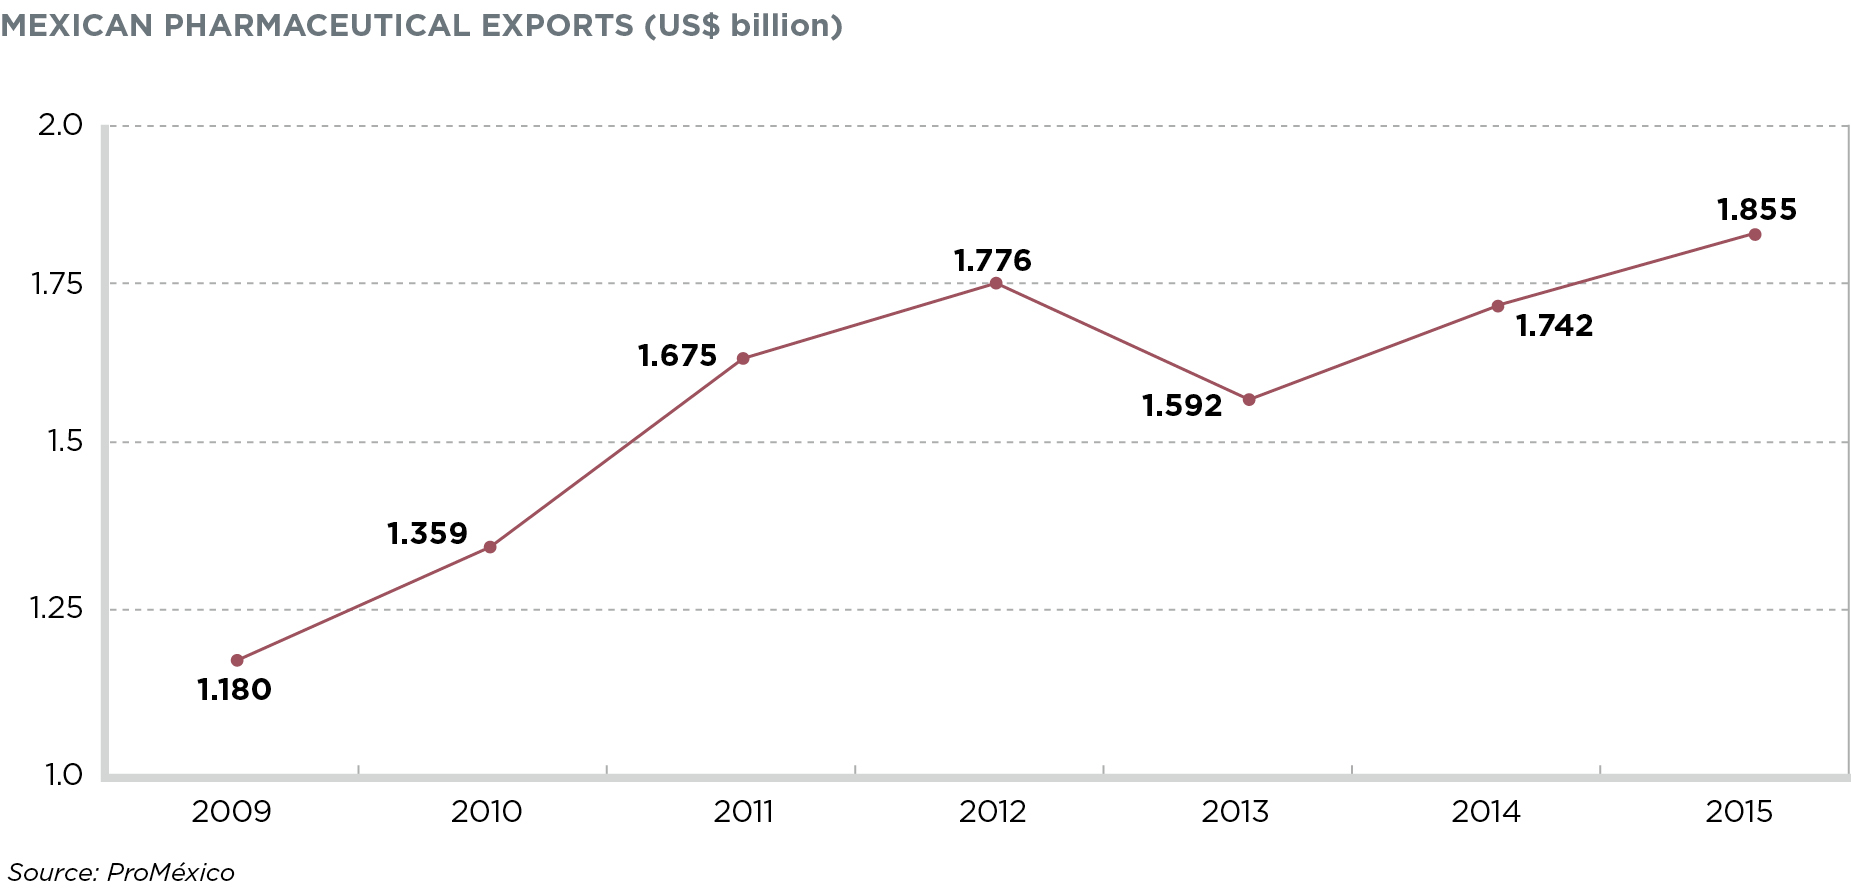 Mexican Pharmaceutical Exports